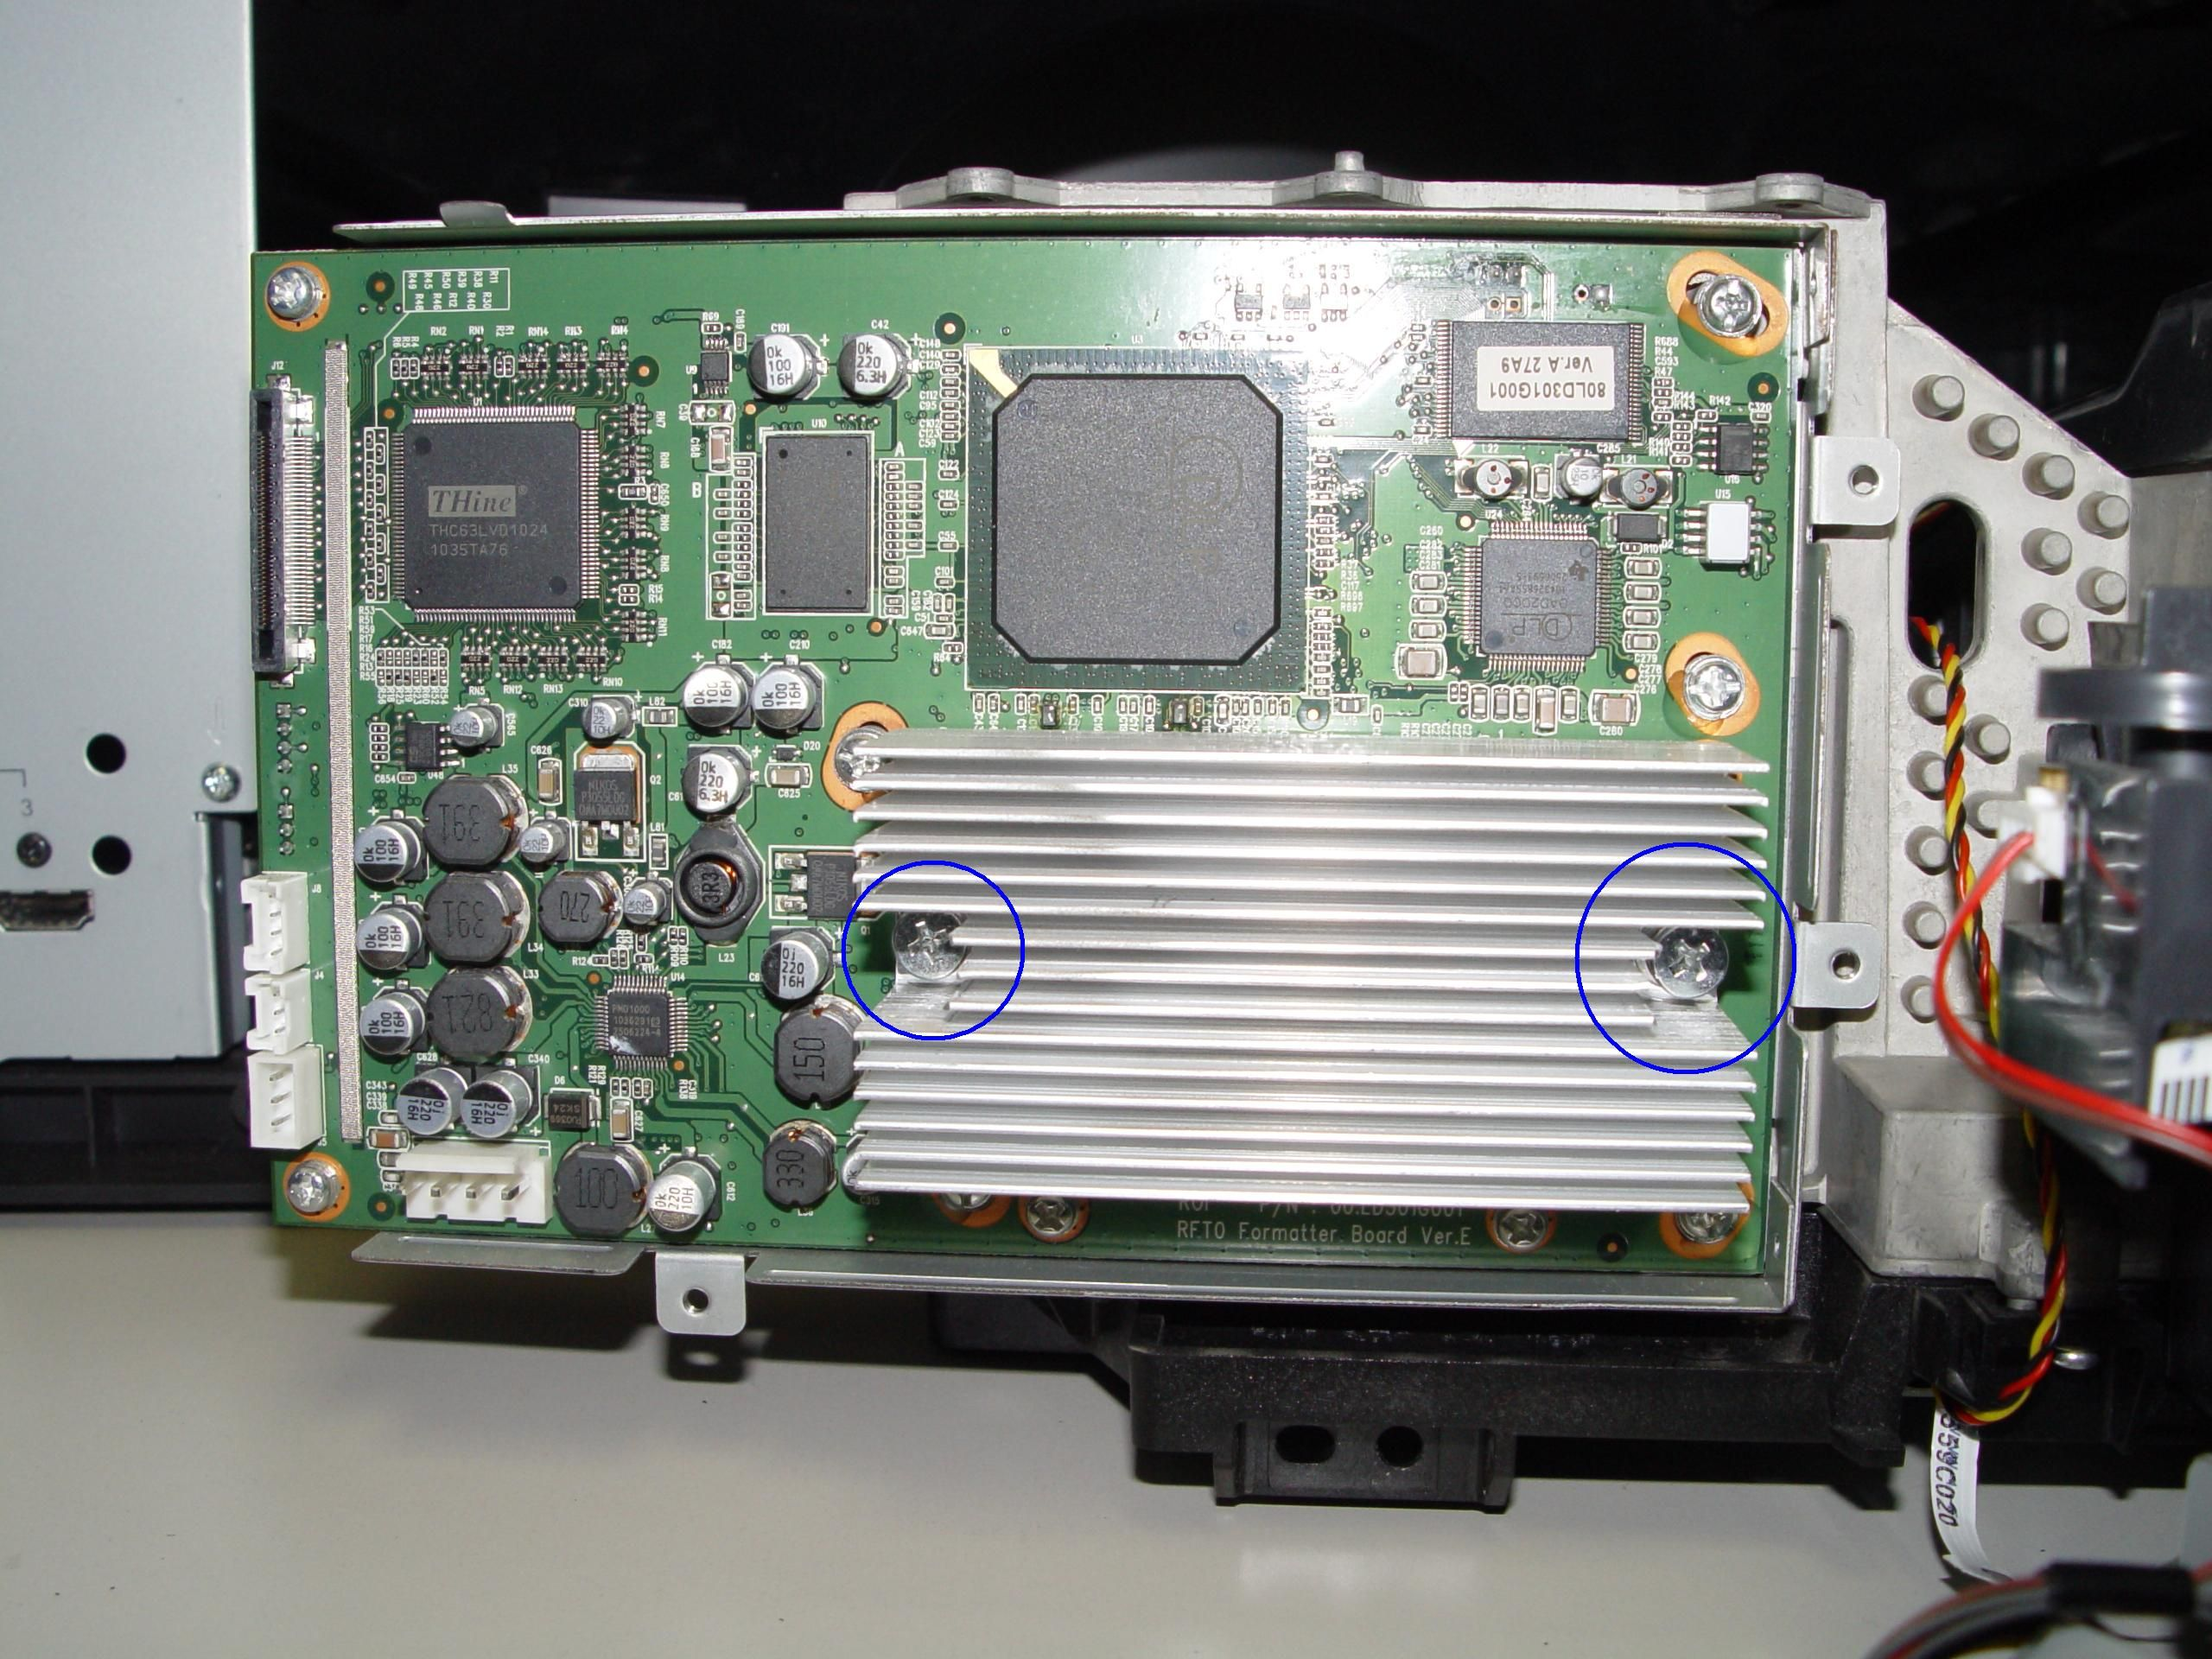 Replace 4719 001997 Dlp Chip In The Mitsubishi Wd 60638 Rptv Gaming Products Chips Mitsubishi